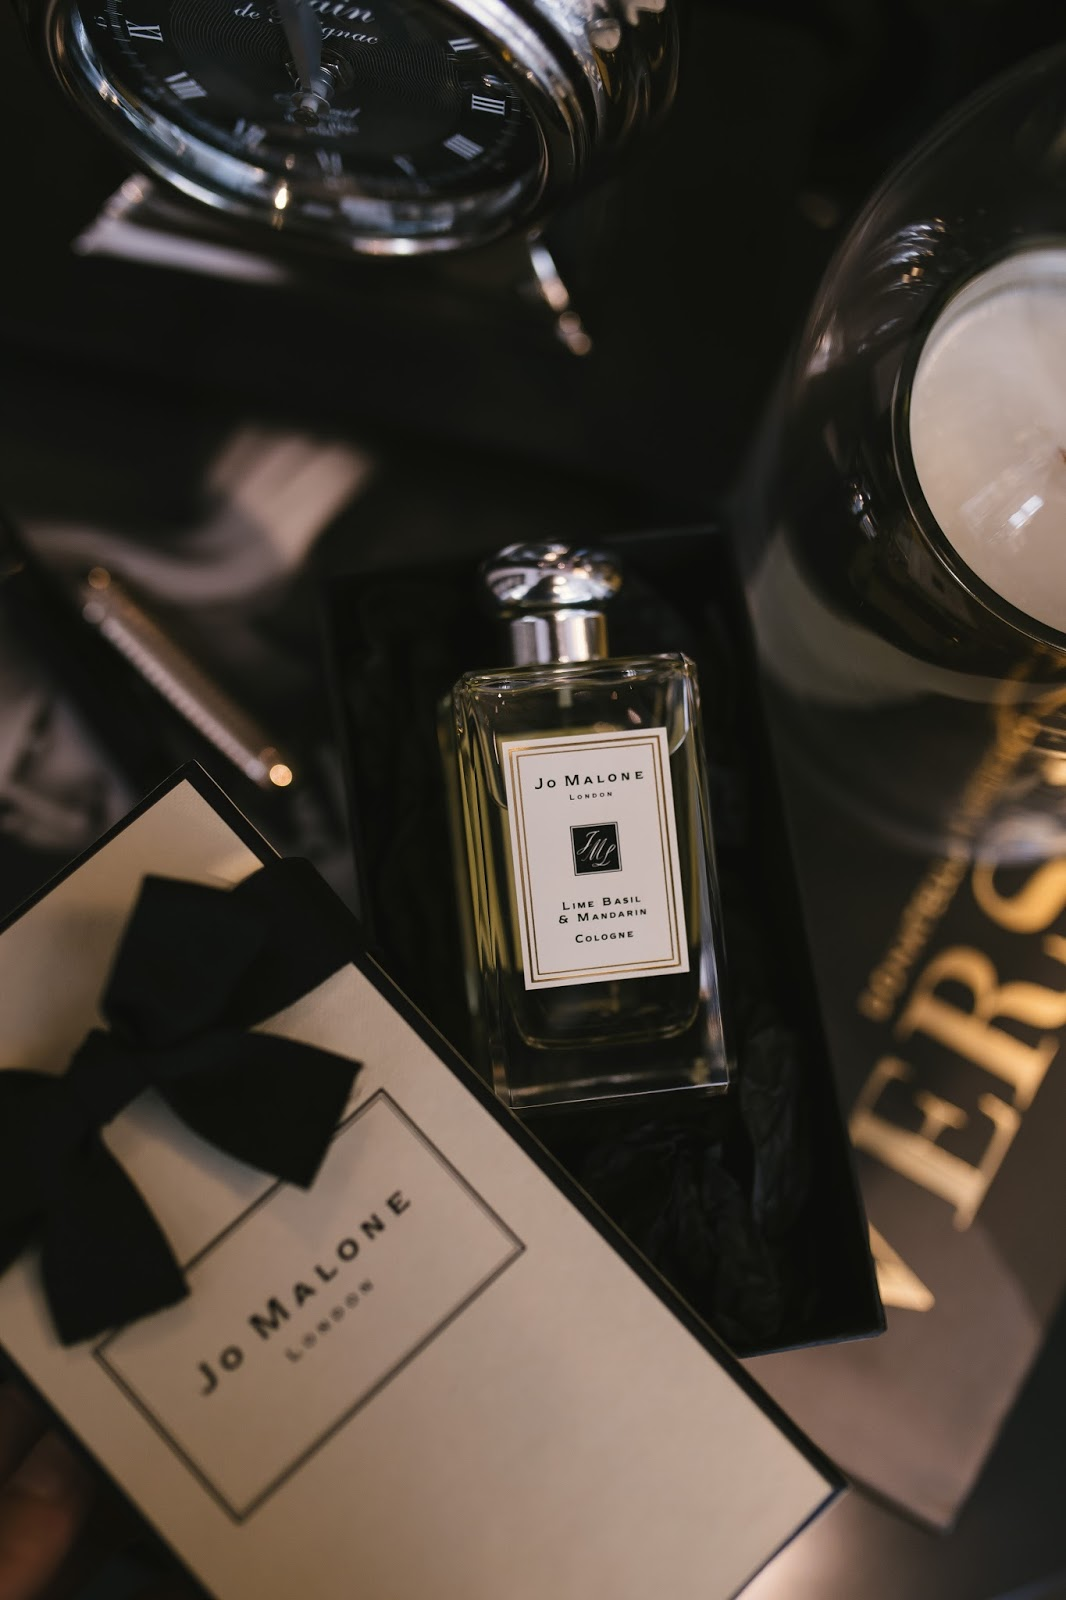 Jo Malone London - Lime Basil & Mandarin Cologne